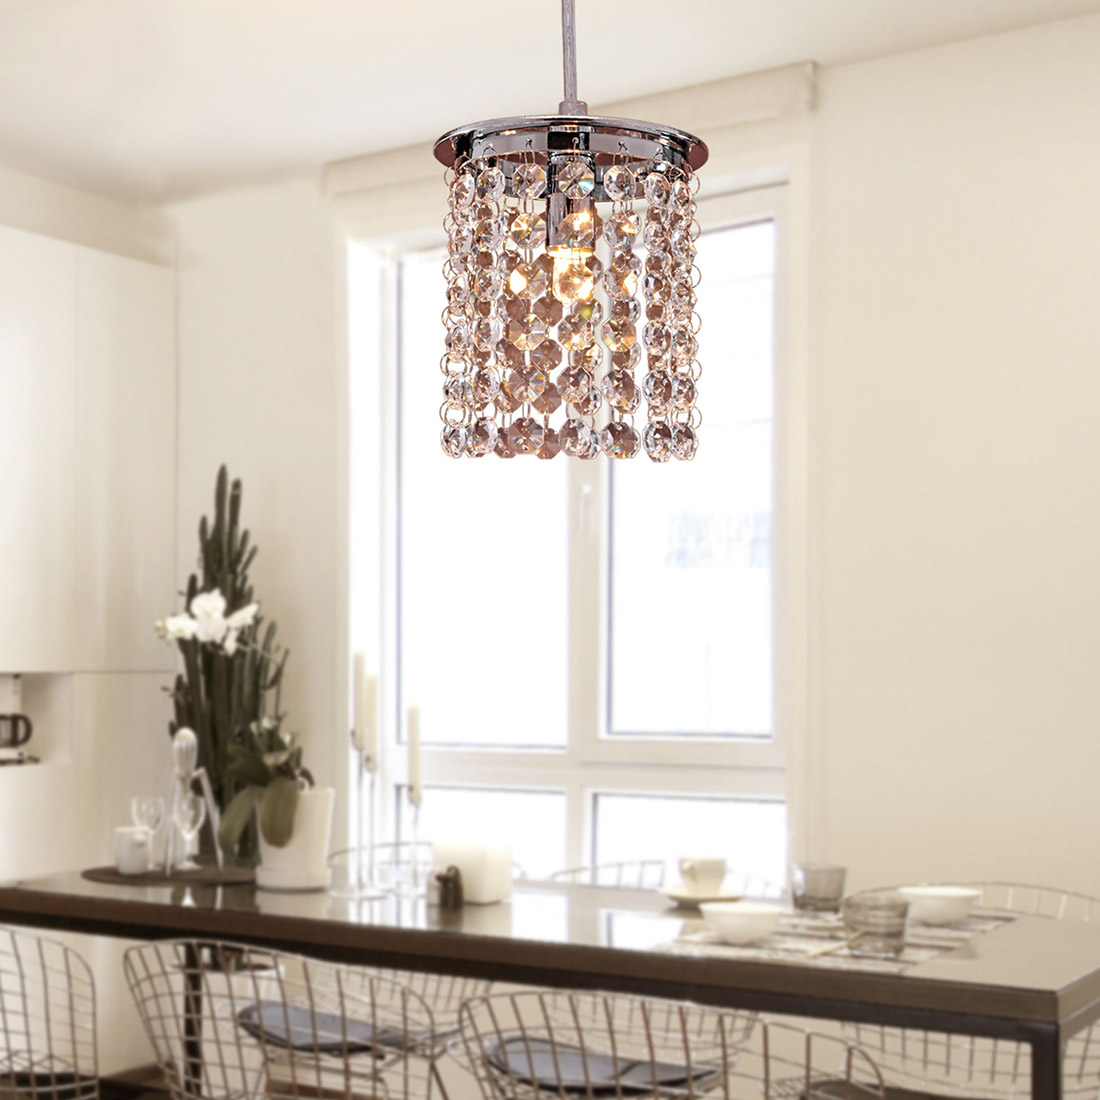 Crystal ceiling light modern chandelier pendant kitchen for Dining room chandeliers modern